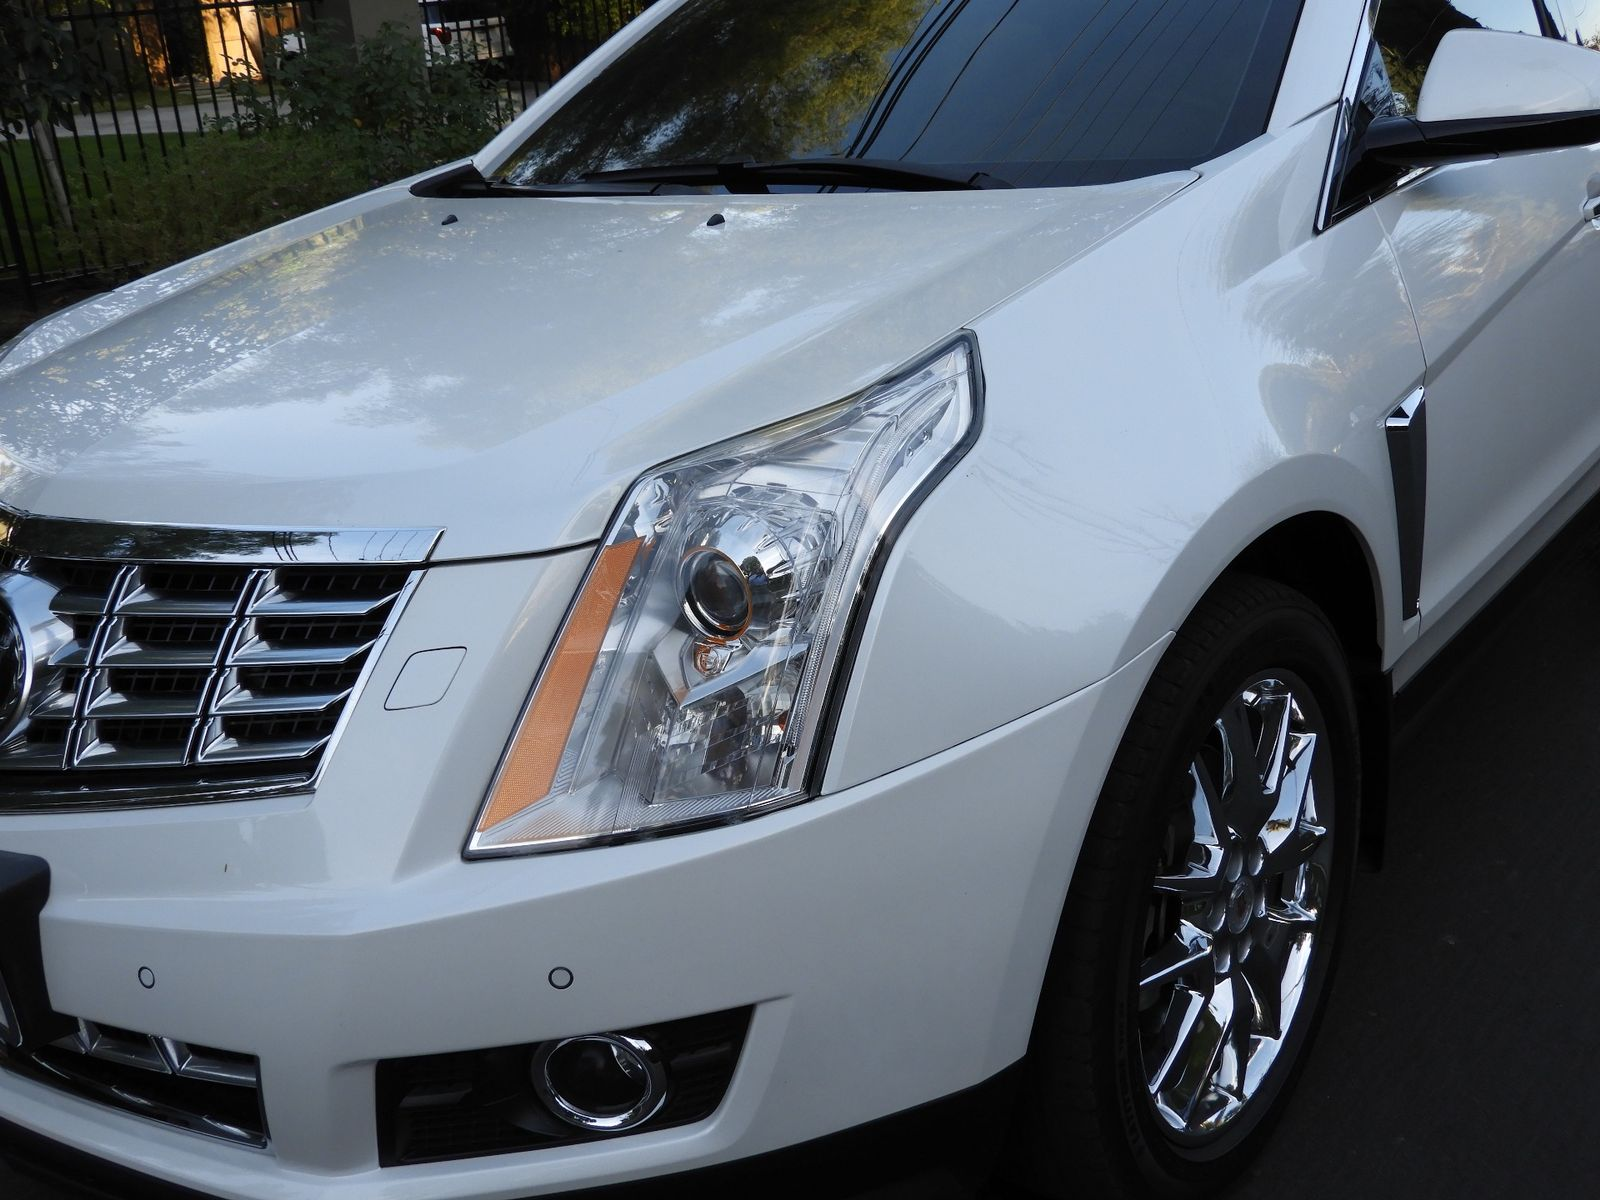 rock hill collection cadillac contact in sc awd suv veh luxury srx